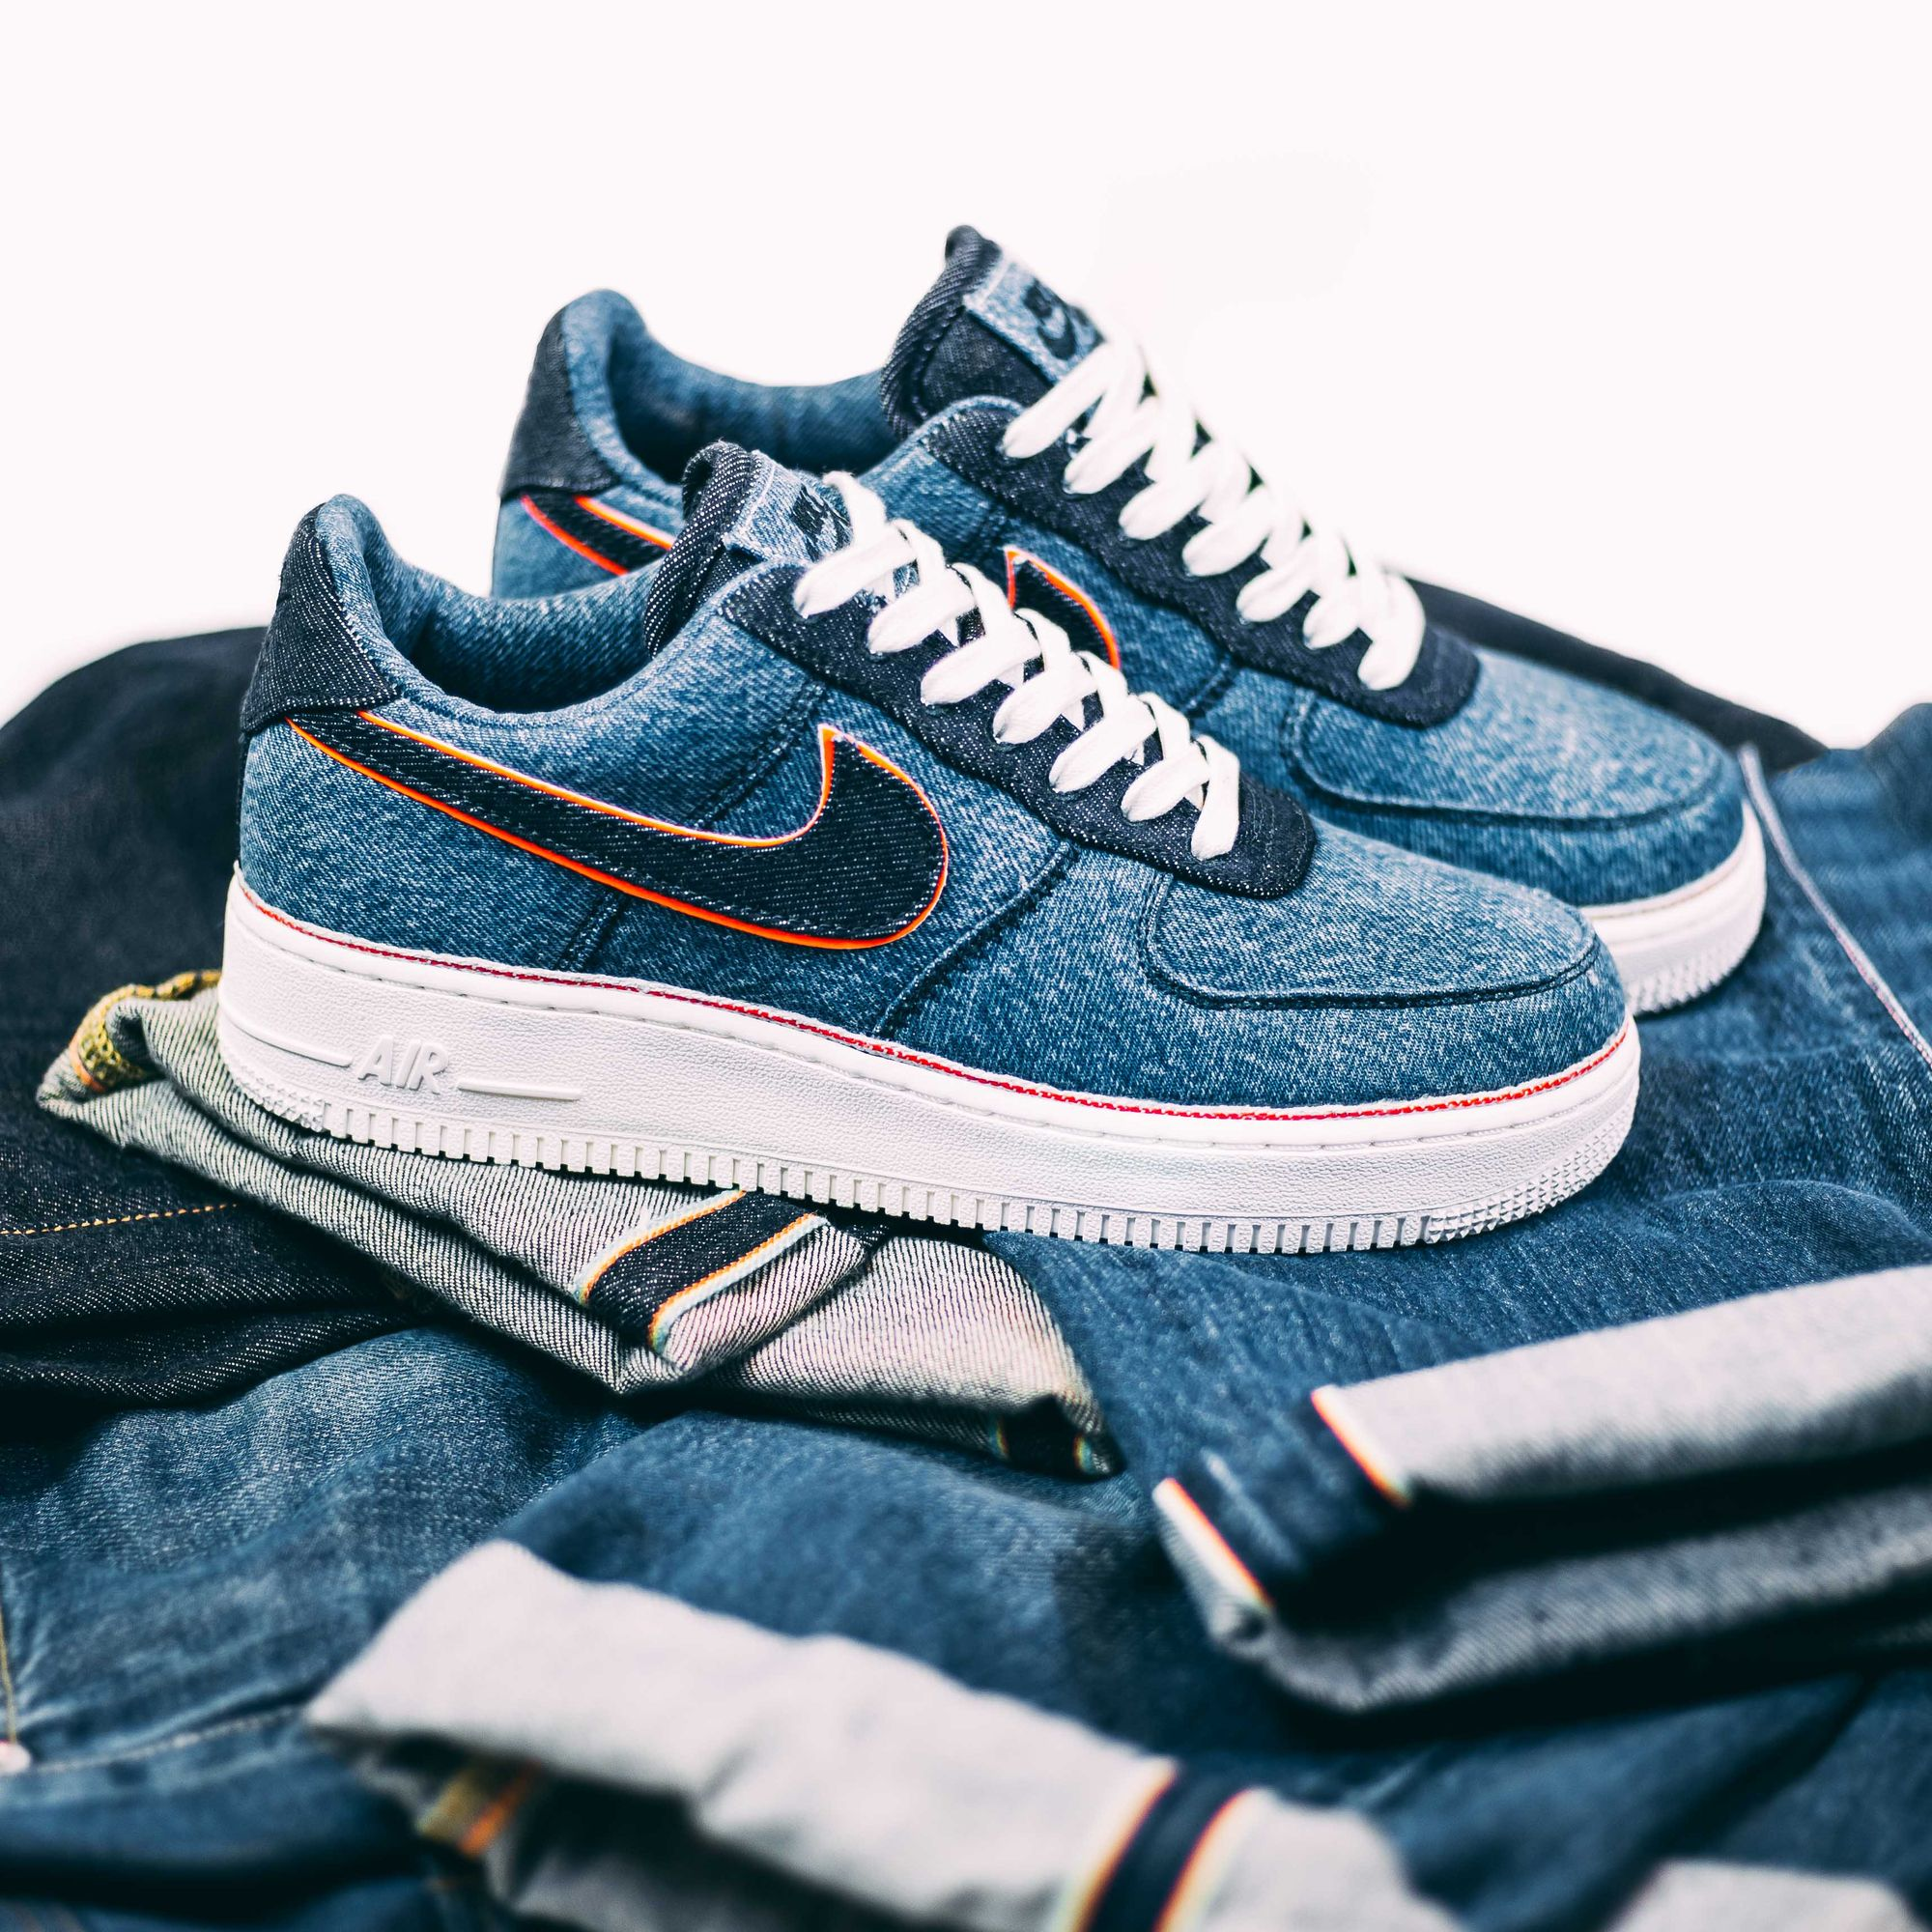 Nike x 3x1 Air Force 1 07 Premium